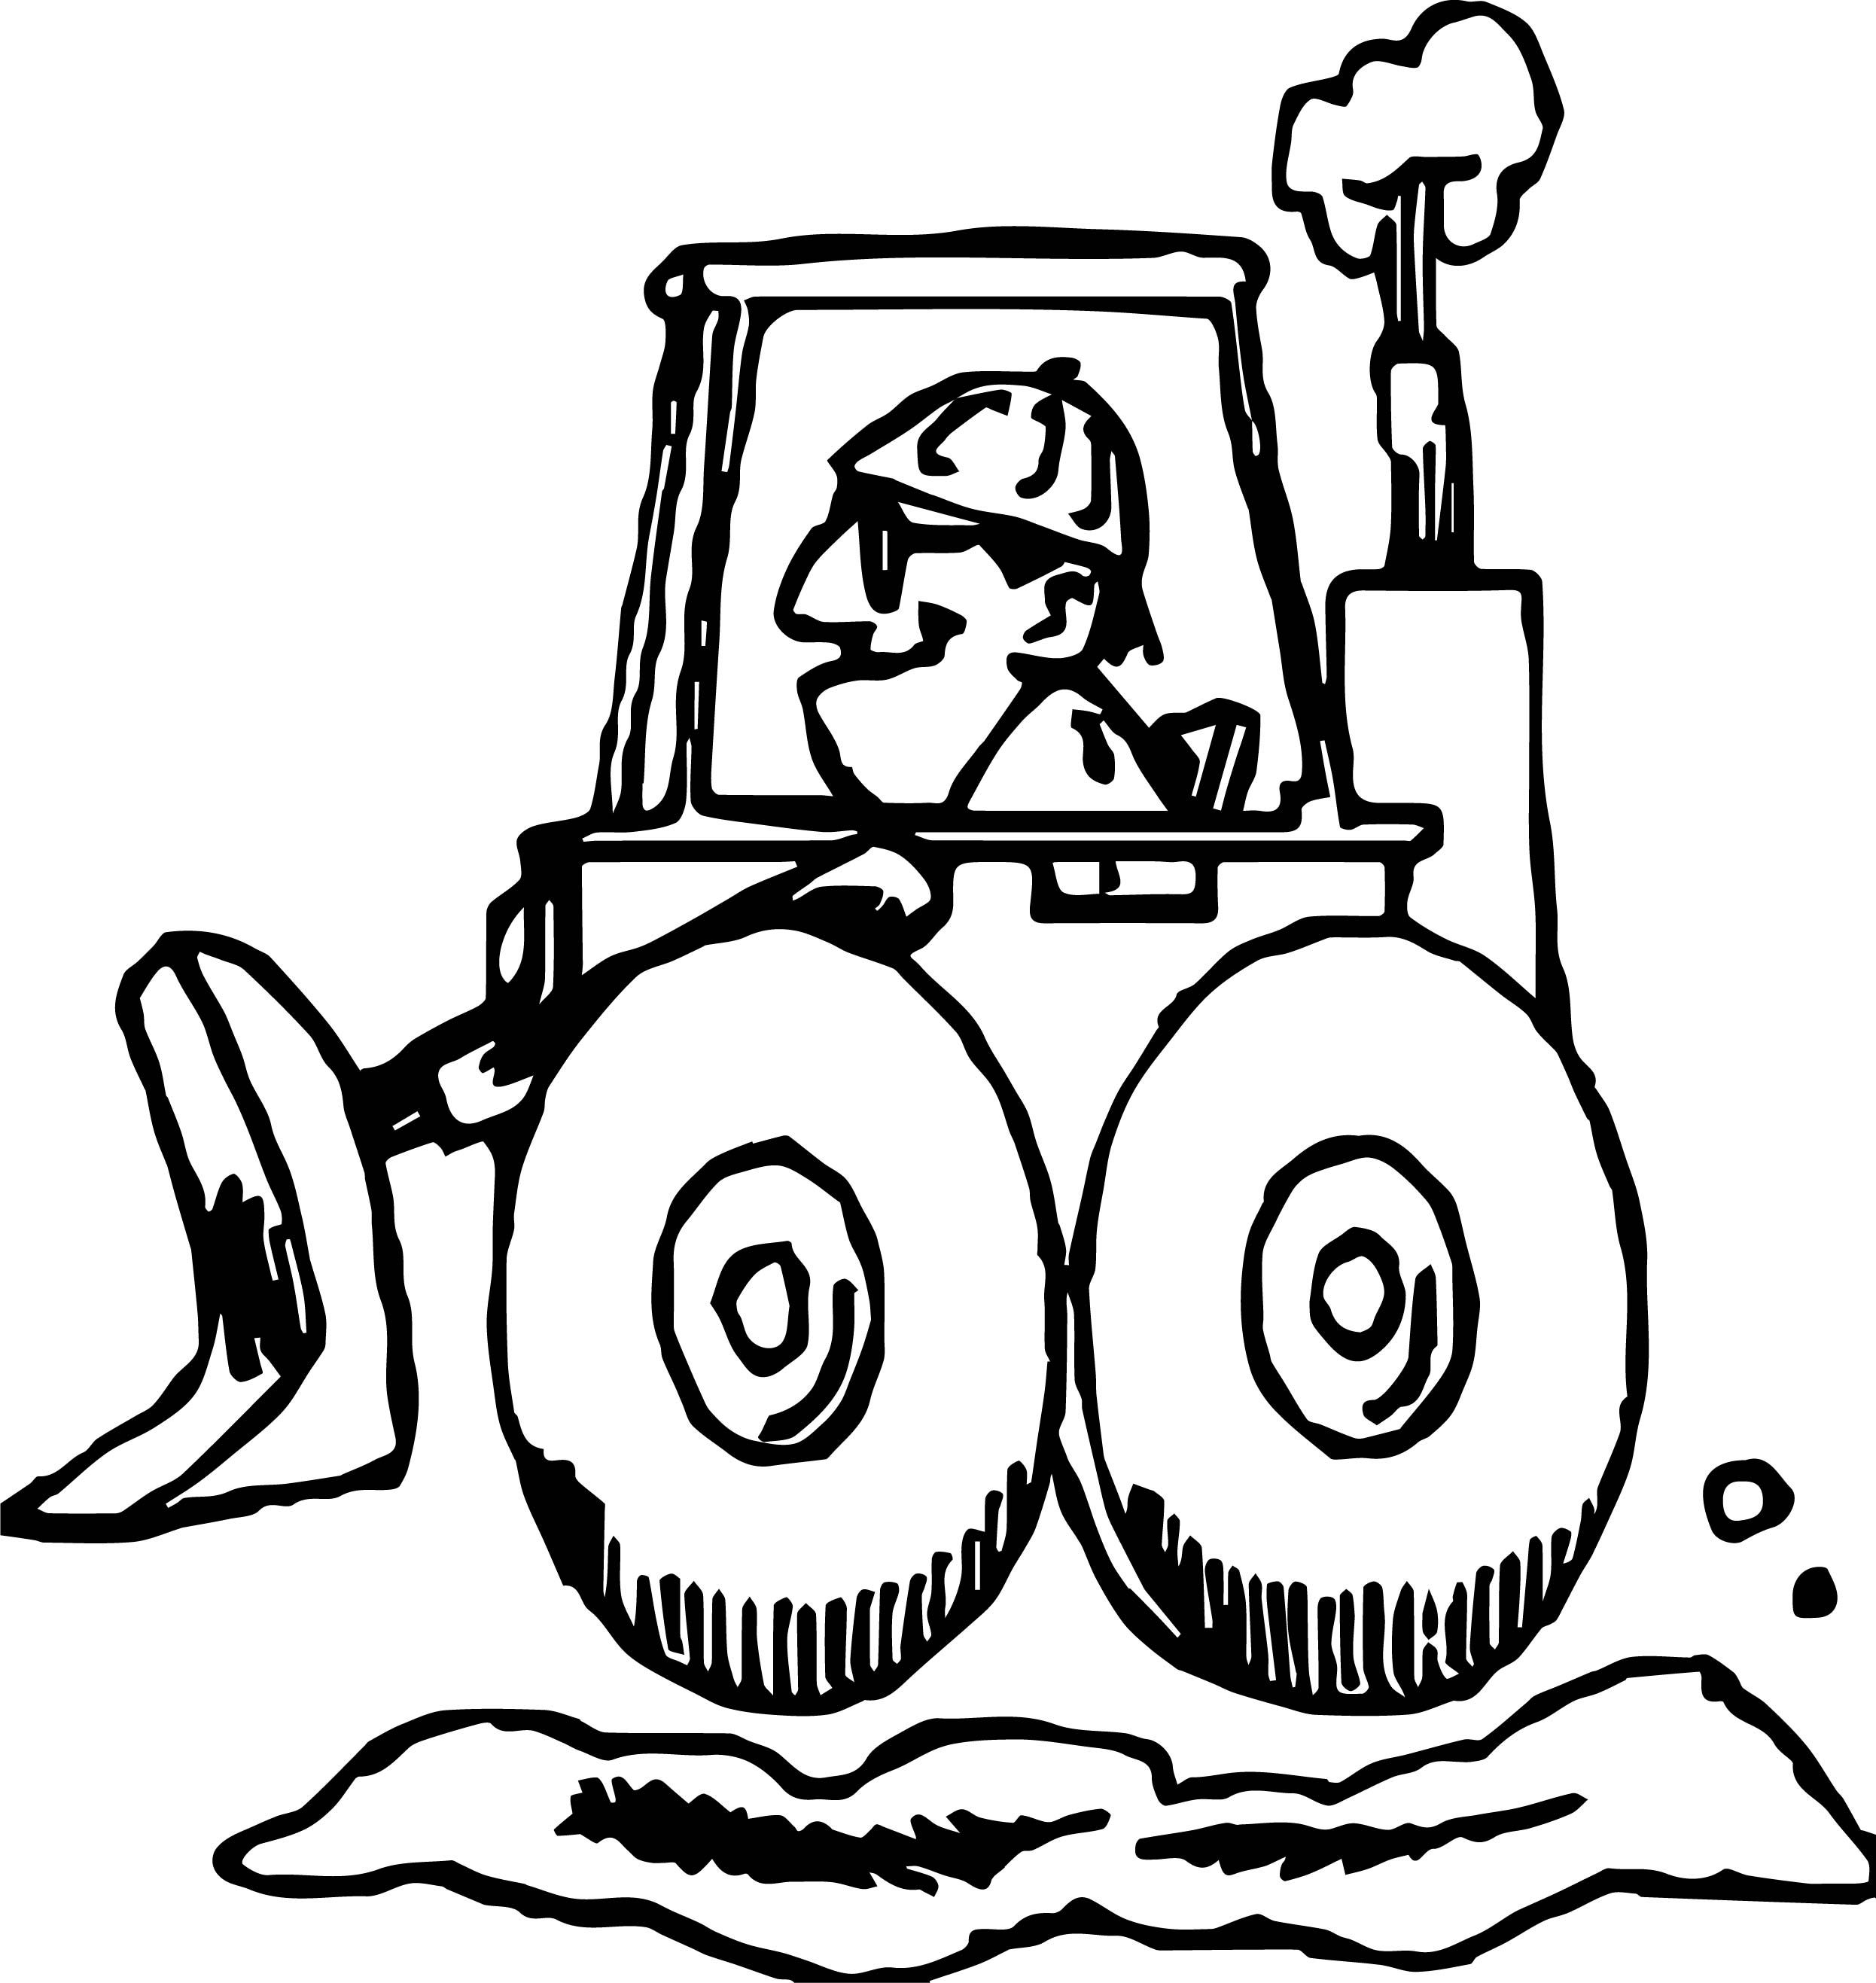 Awesome Bulldozer Man Coloring Page Monster Truck Coloring Pages Truck Coloring Pages Monster Trucks